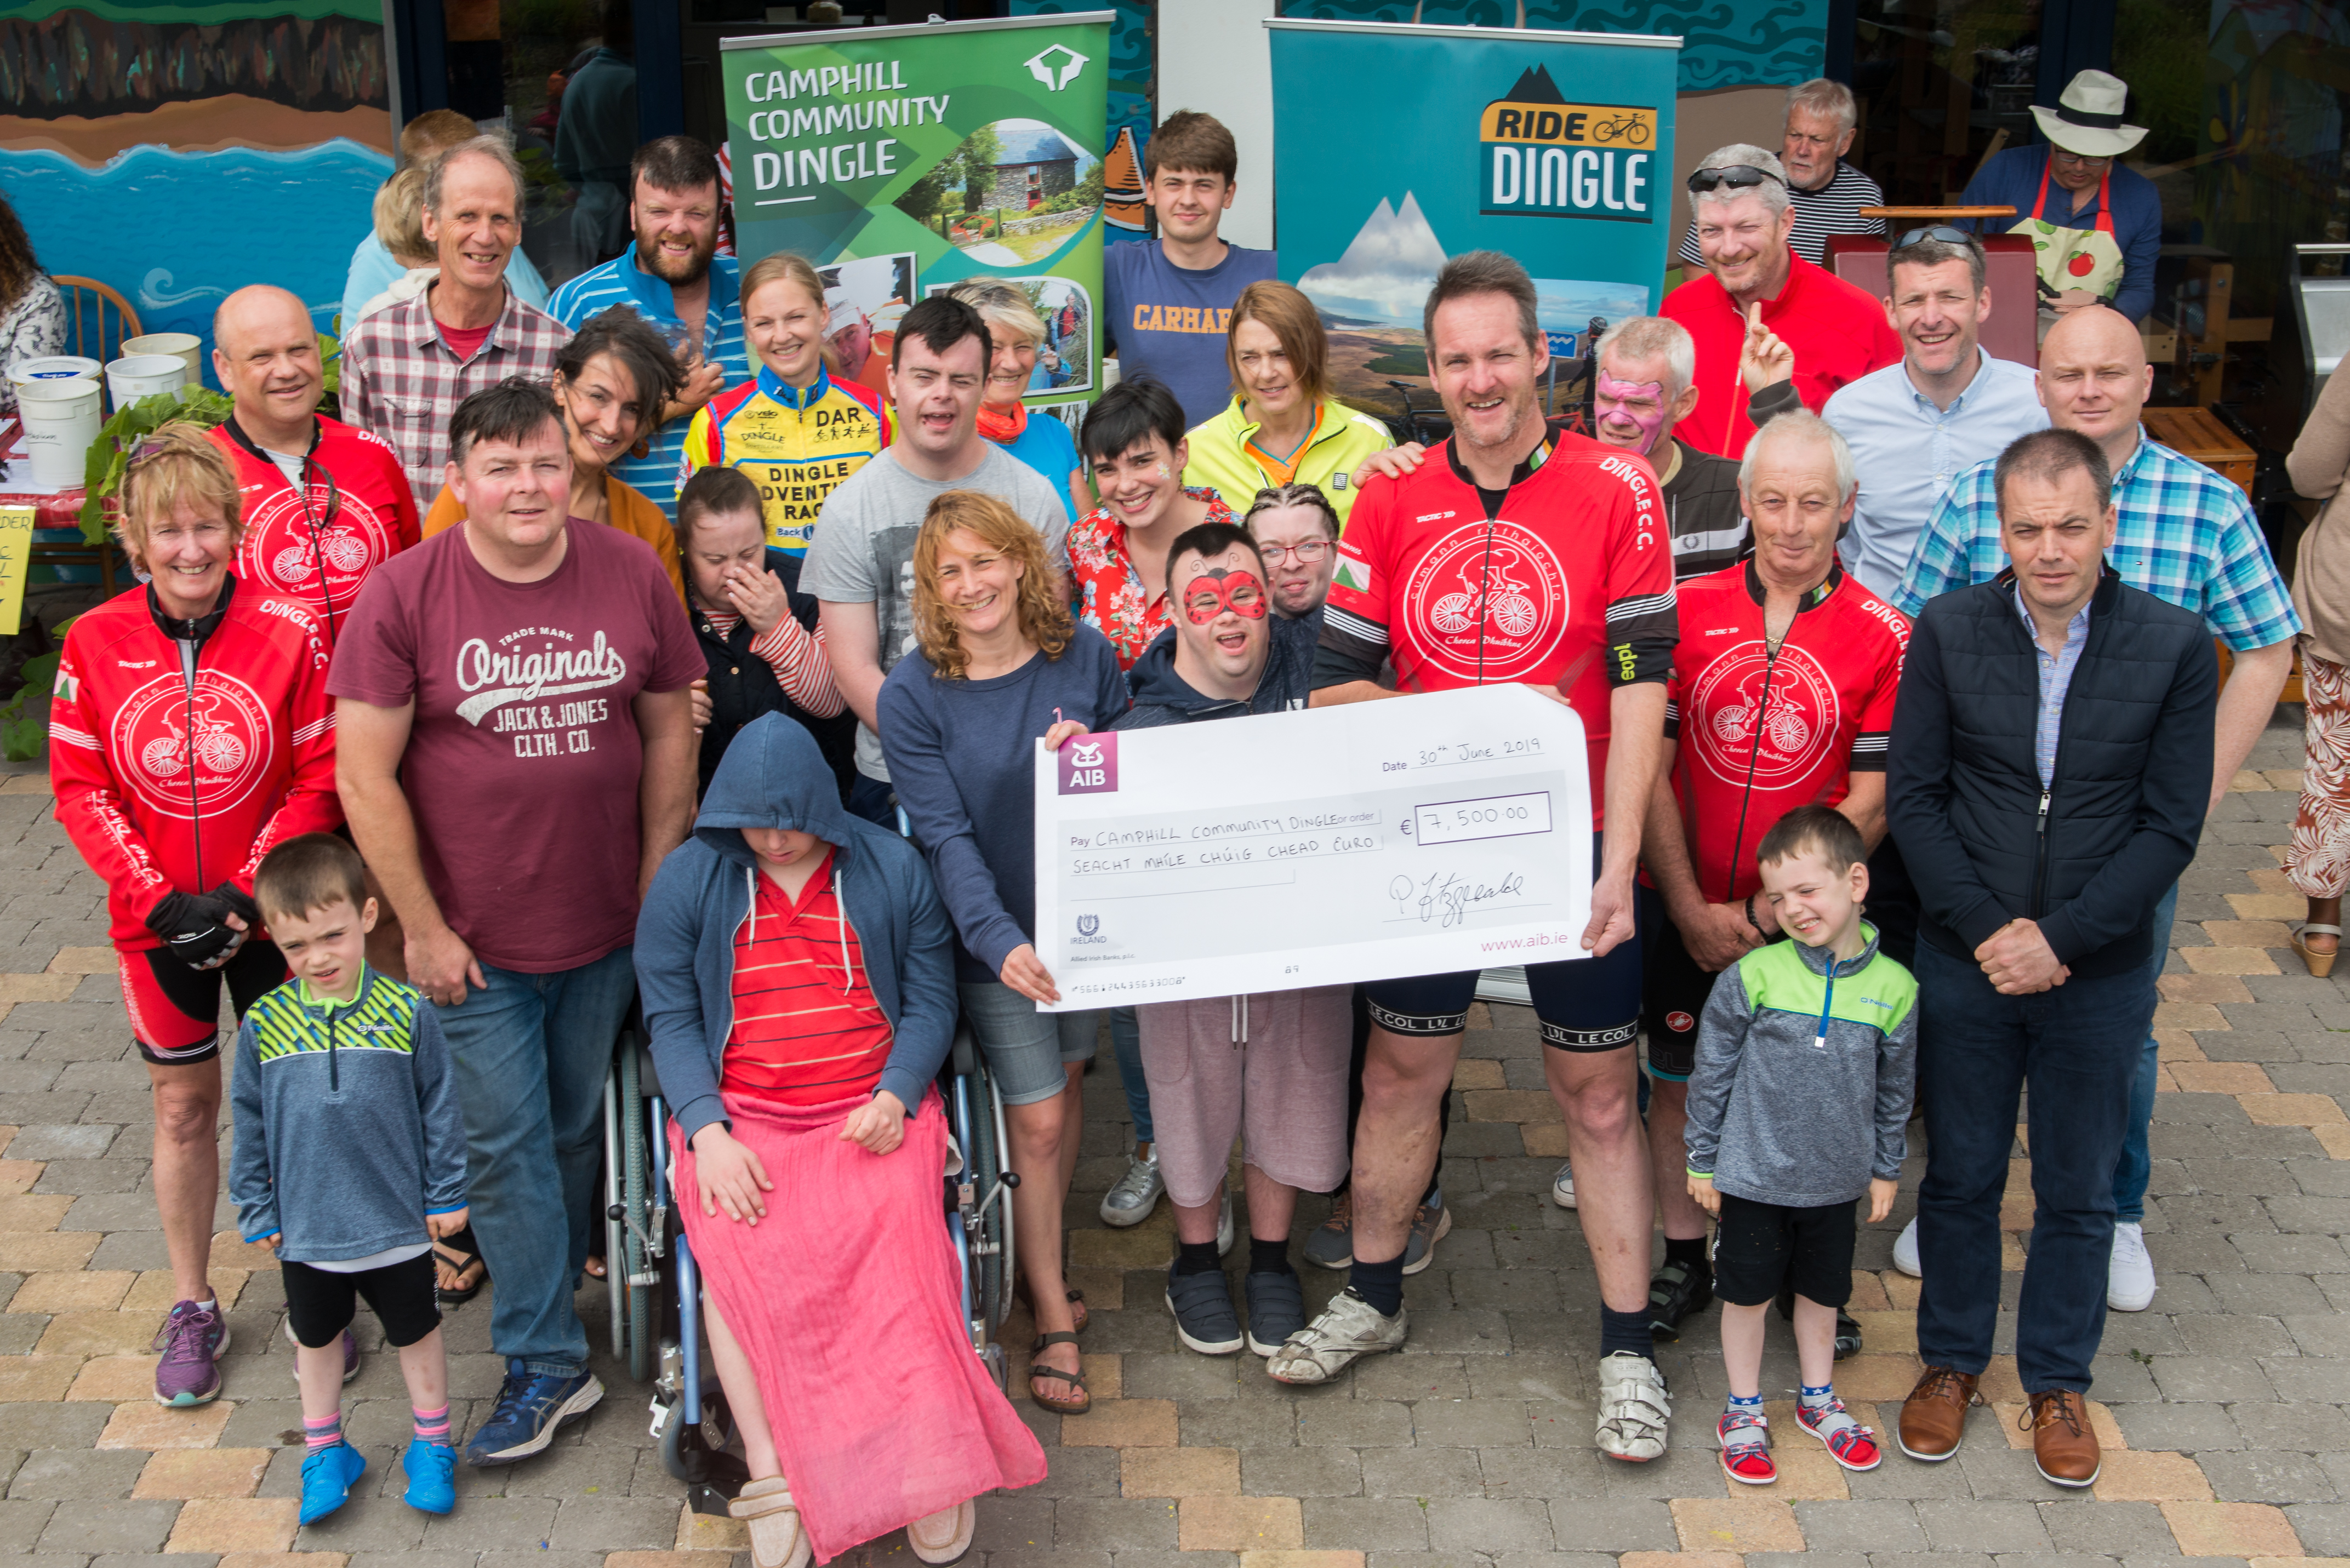 Dingle Charities Win Big from Inaugural Ride Dingle Cycle Event